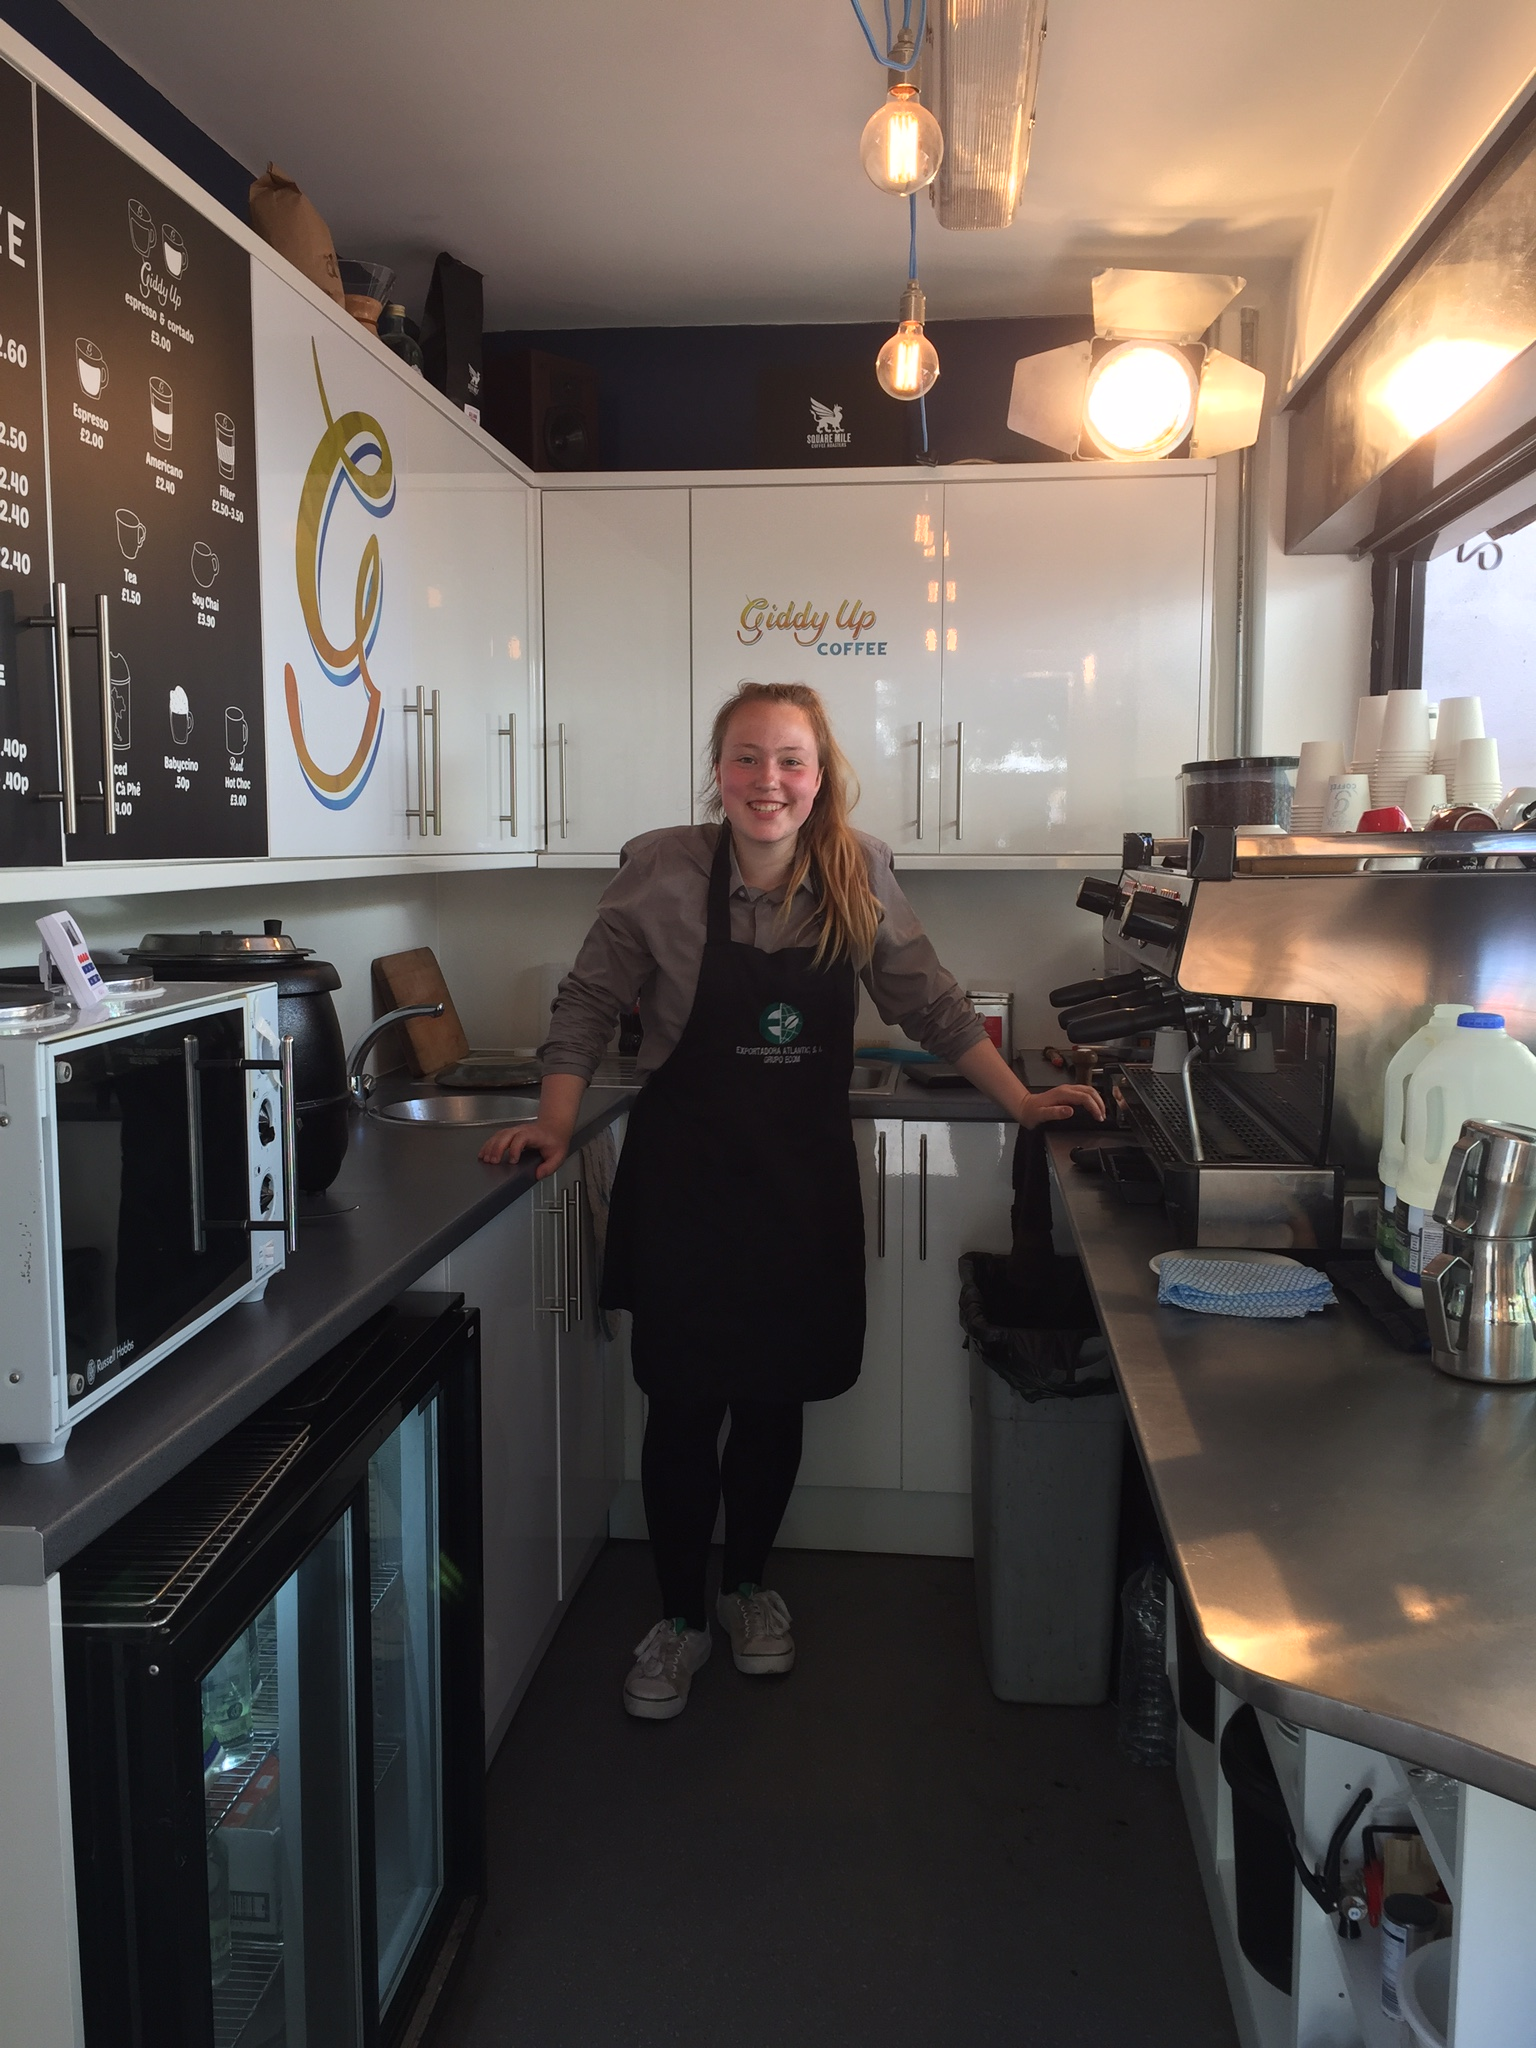 Want to learn the business of specialty coffee? - We are always on the lookout for talented, motivated baristas to join the team. If you think you have what it takes, drop us a line at careers@giddyupcoffee.co.uk with your CV and covering letter explaining what sort of role you are looking for.